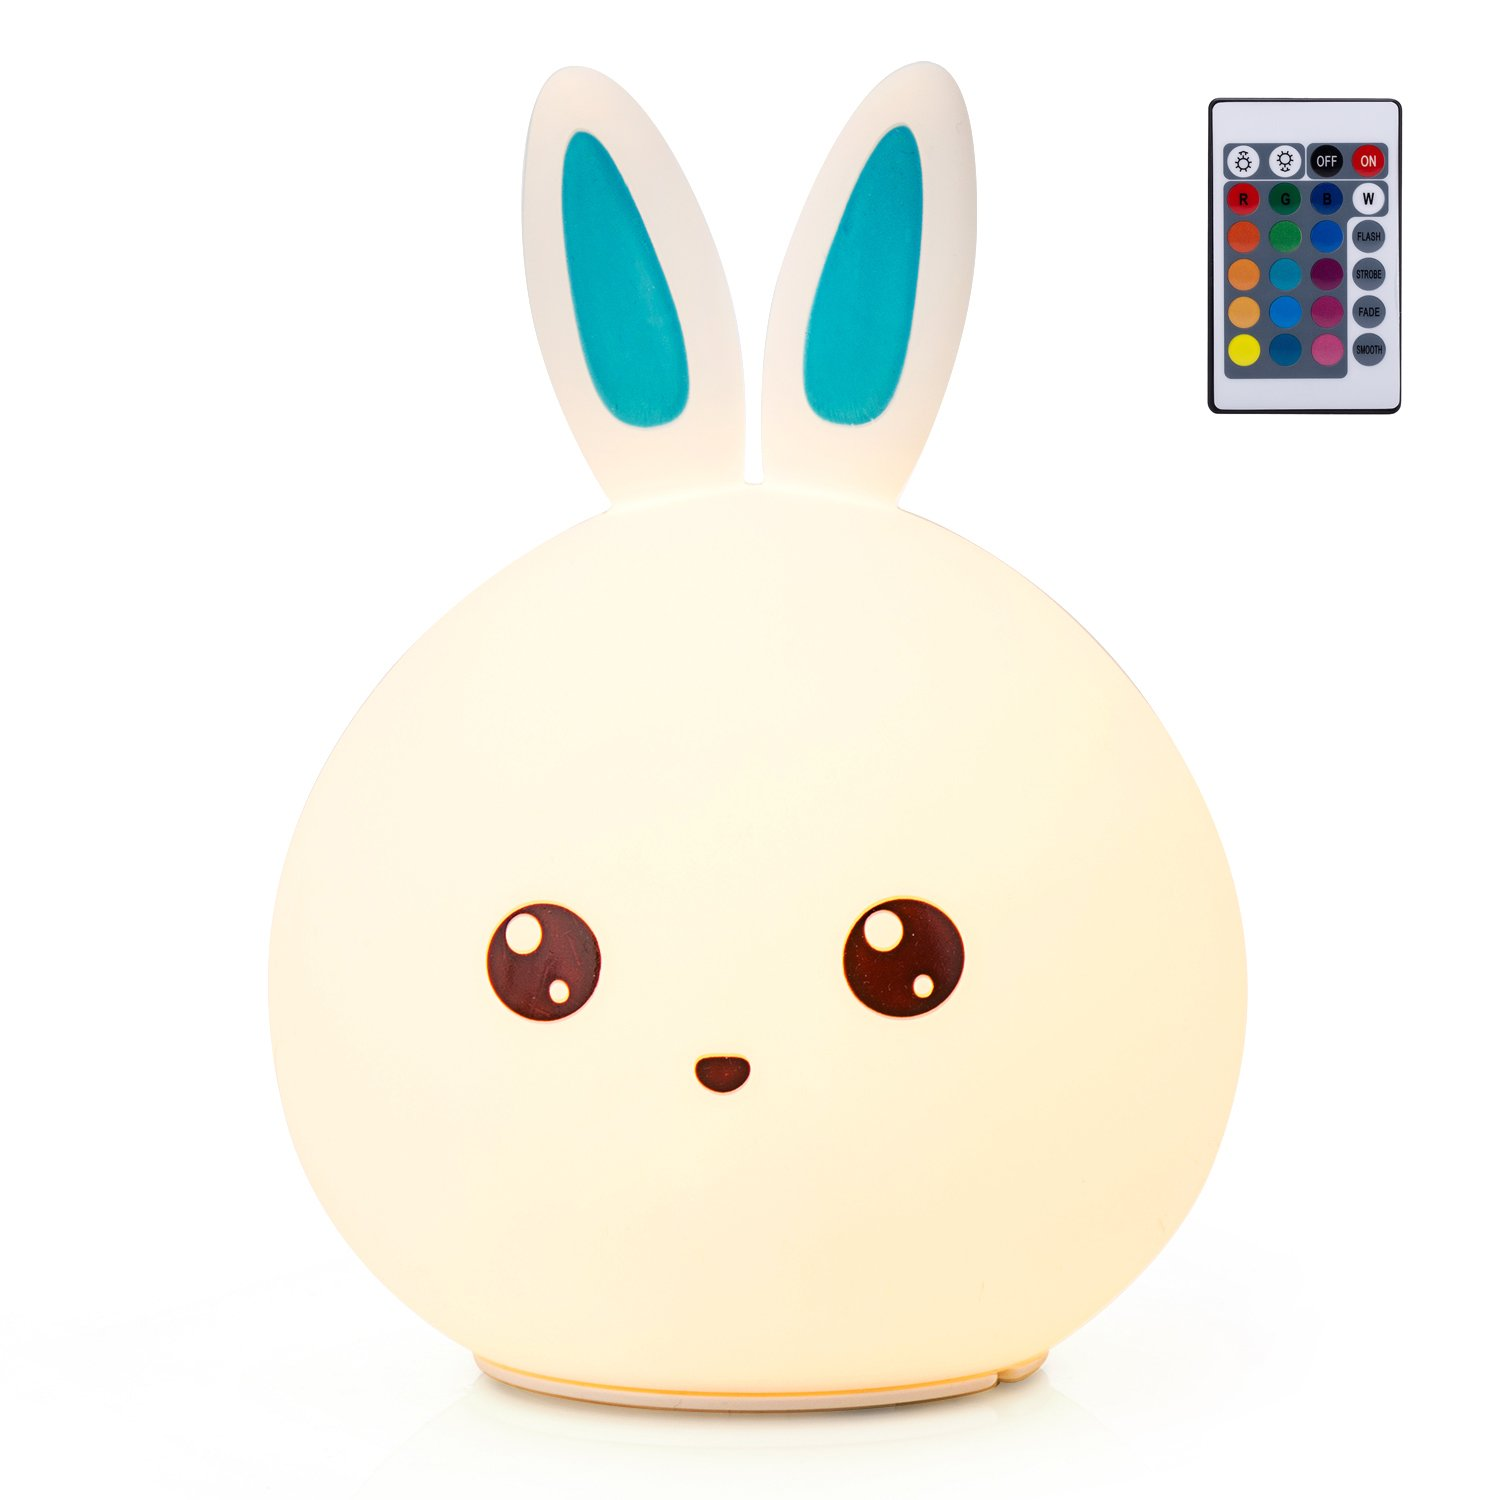 GoLine Remote & Tap Control LED Bunny Night Light, Cute Rabbit Multicolor Kids Baby Nursery Lamp, 5 Light Modes, Static/Breathing/Flashing, Brightness Adjustment, 20-hour Portable Use.(NL012-BE)